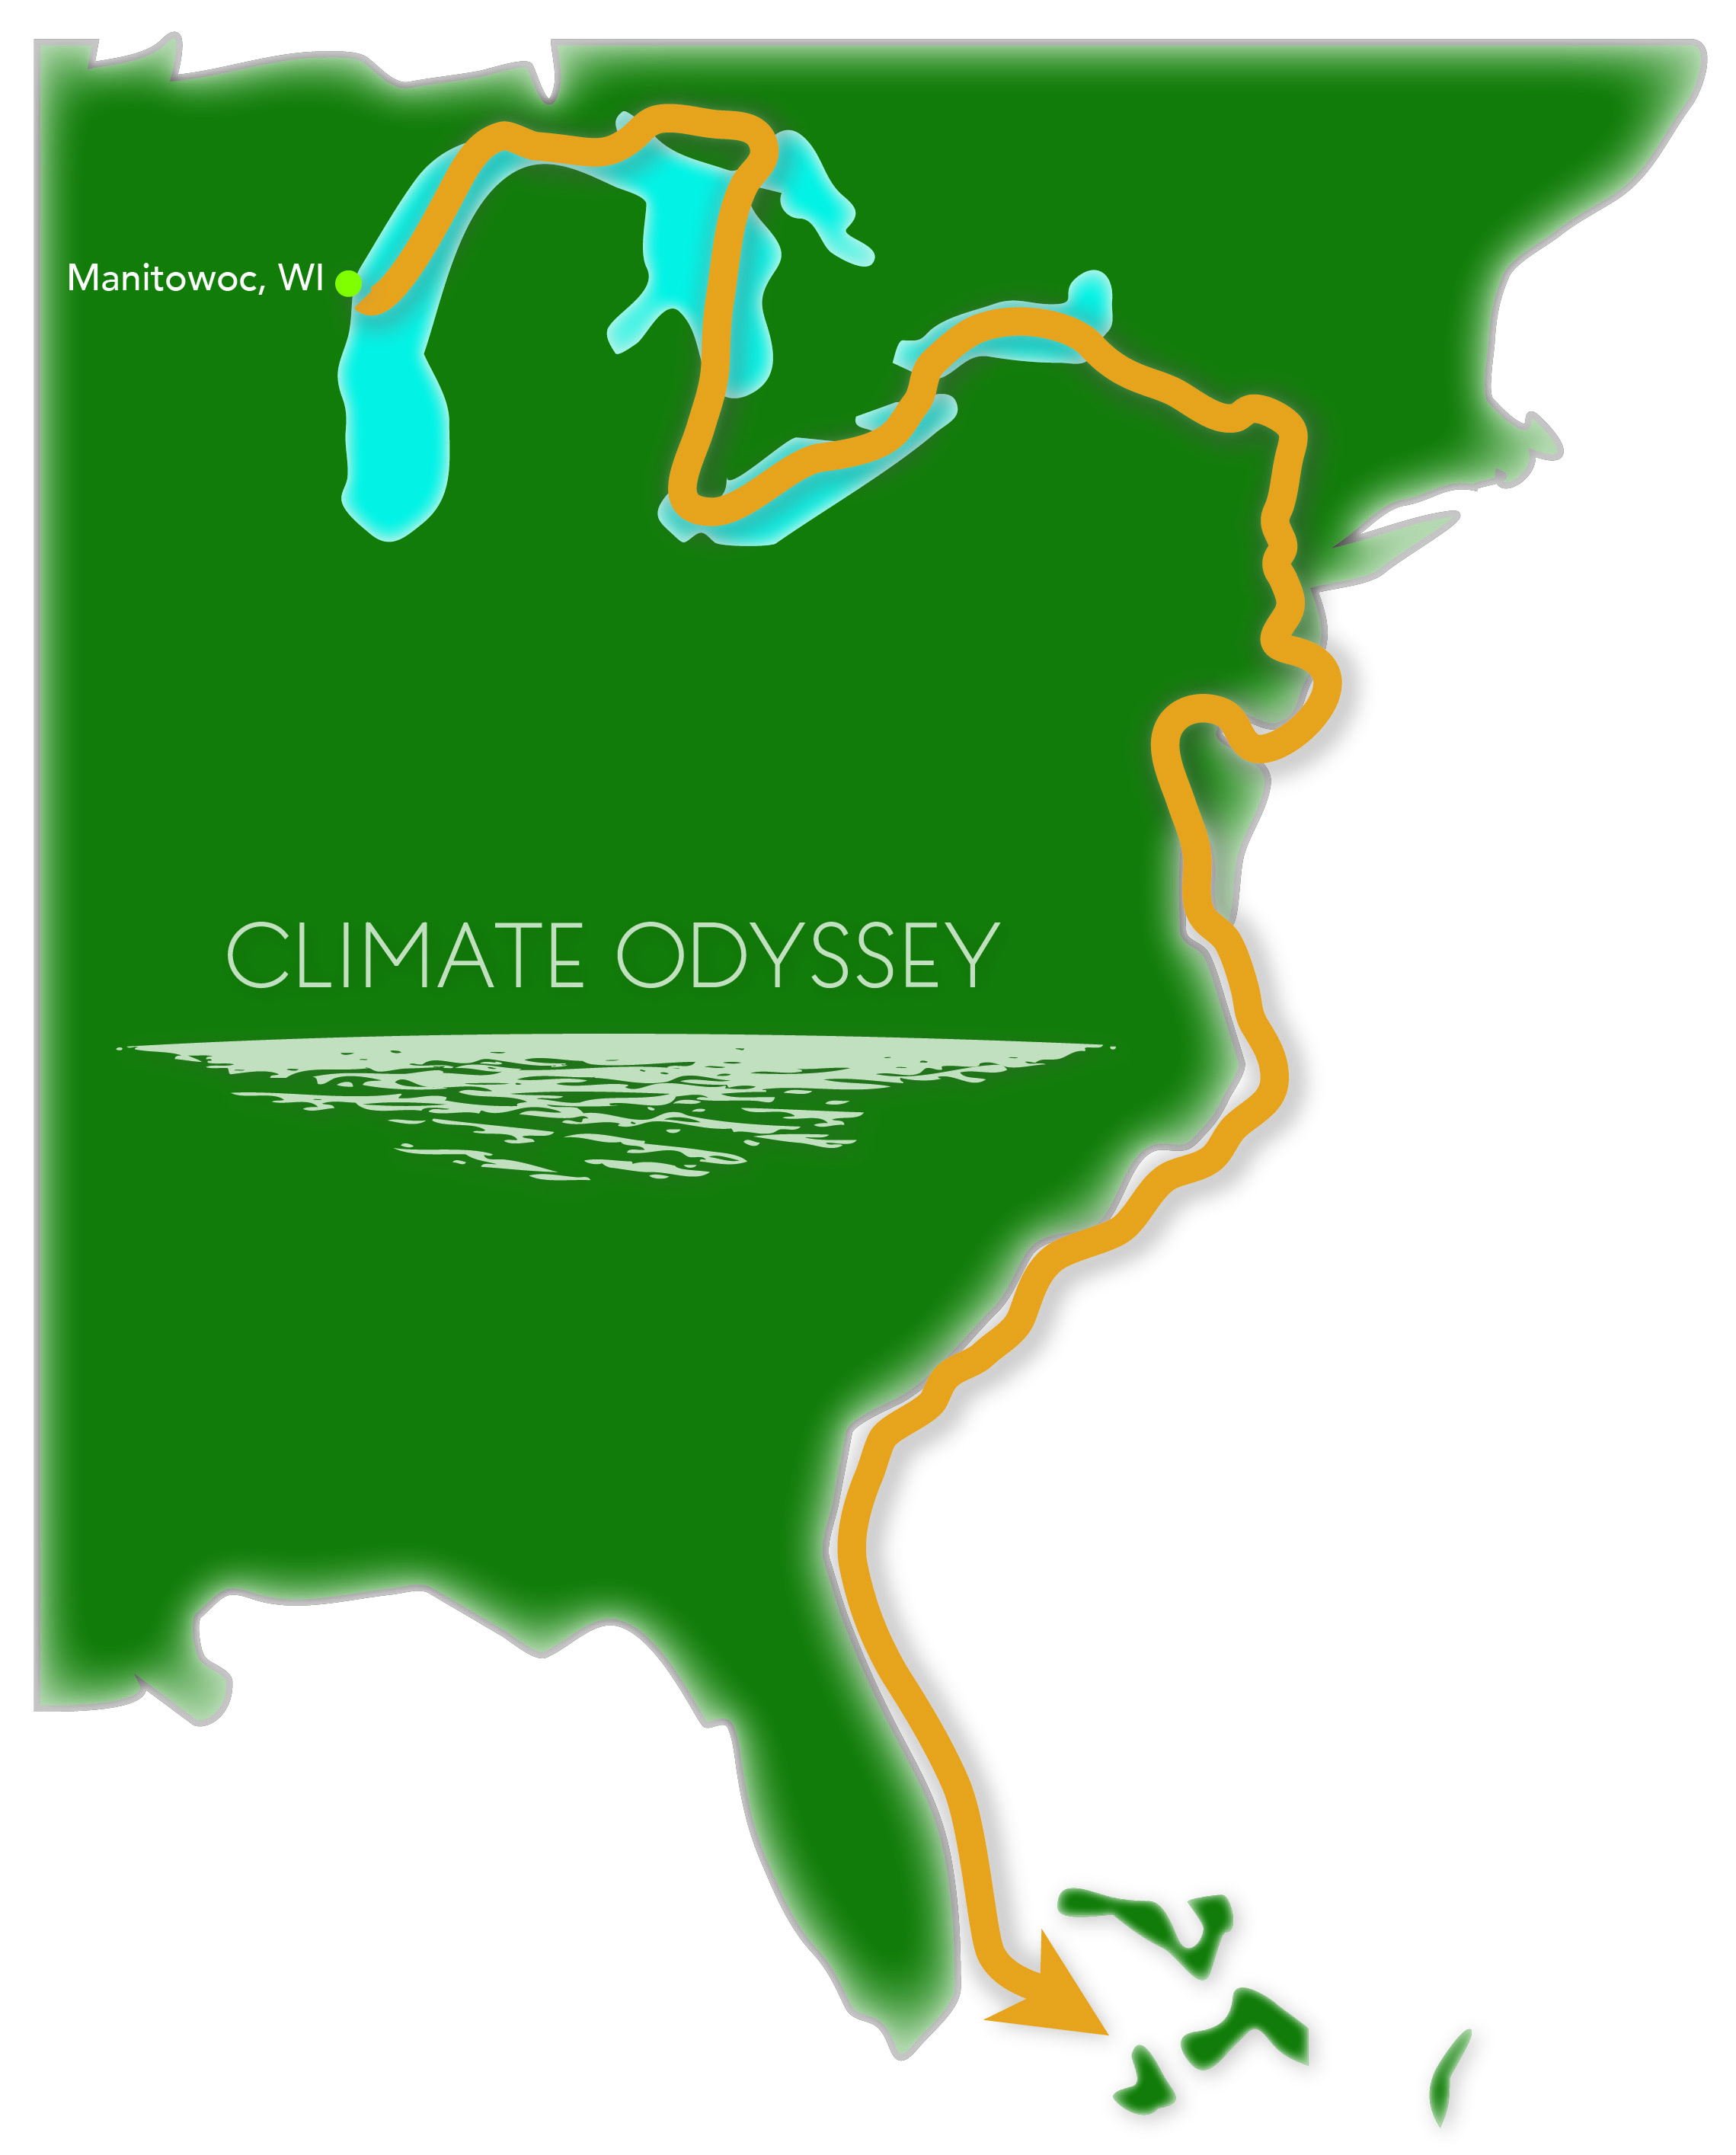 climate odyssey route map